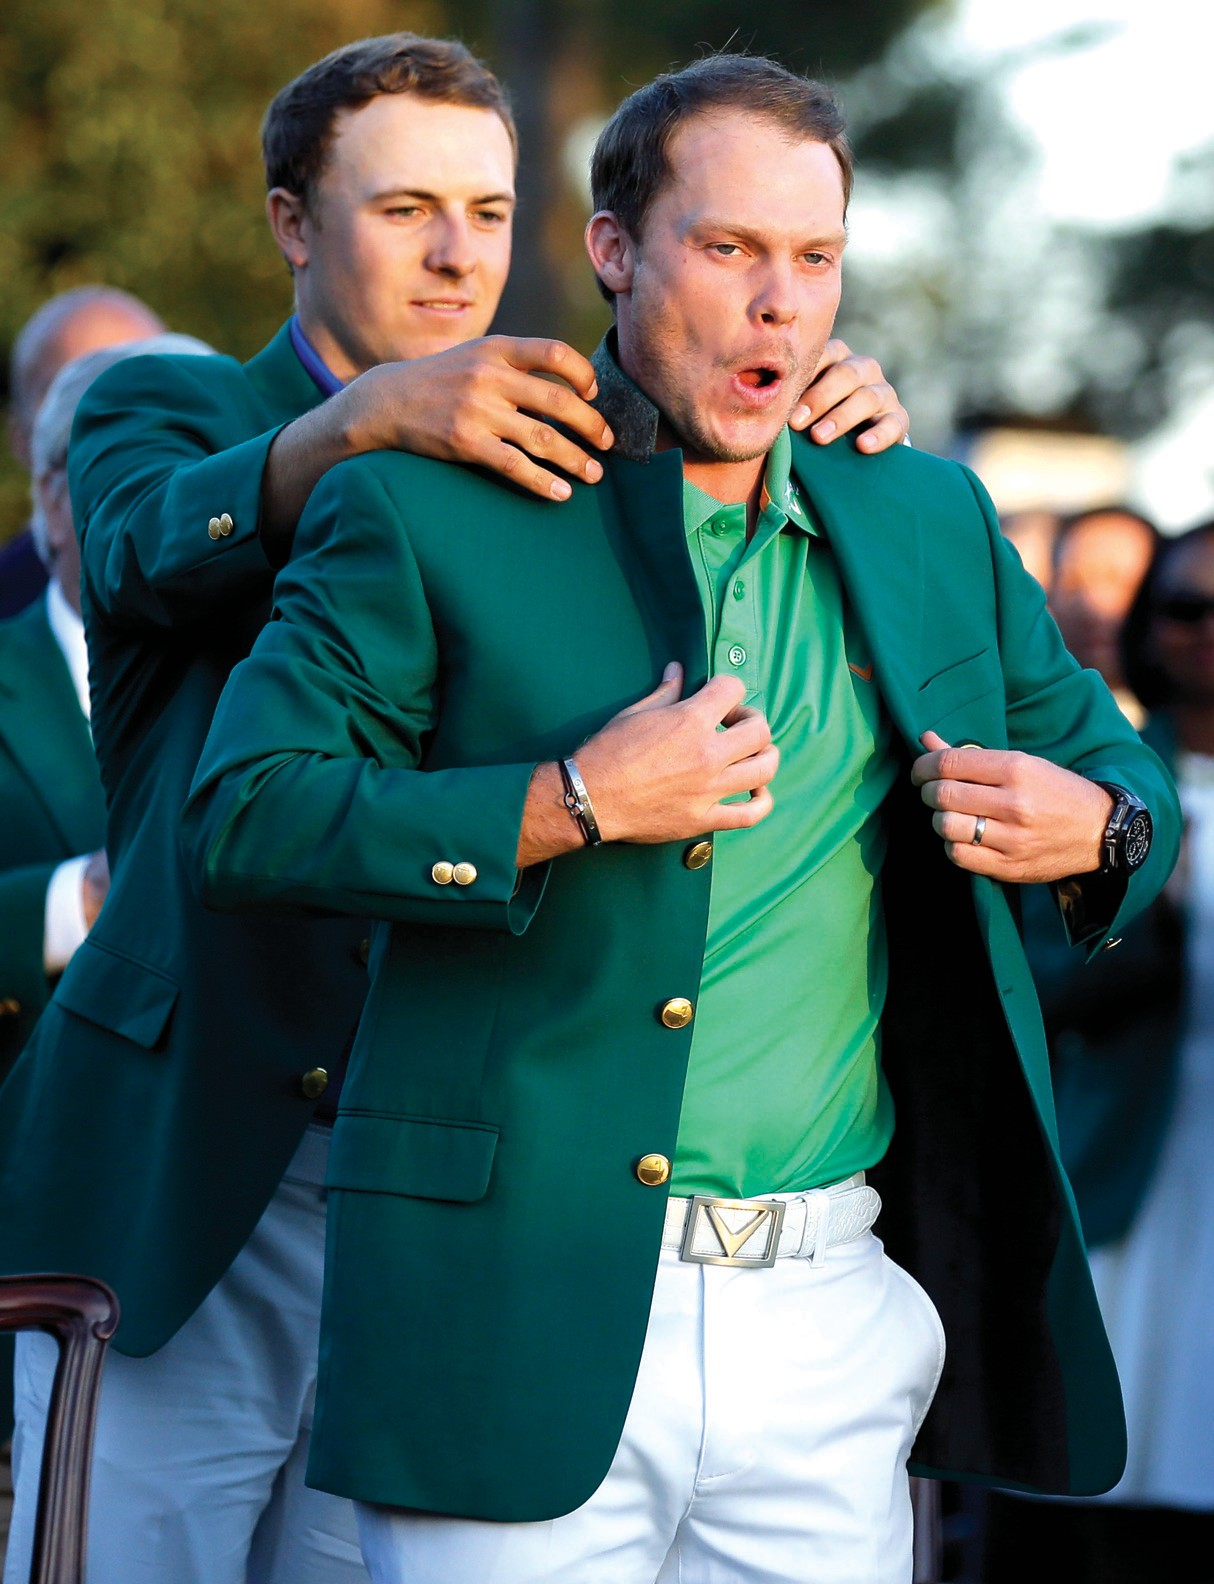 Defending champion Jordan Spieth, left, helps 2016 Masters champion Danny Willett, of England, put on his green jacket following the final round of the Masters on Sunday.